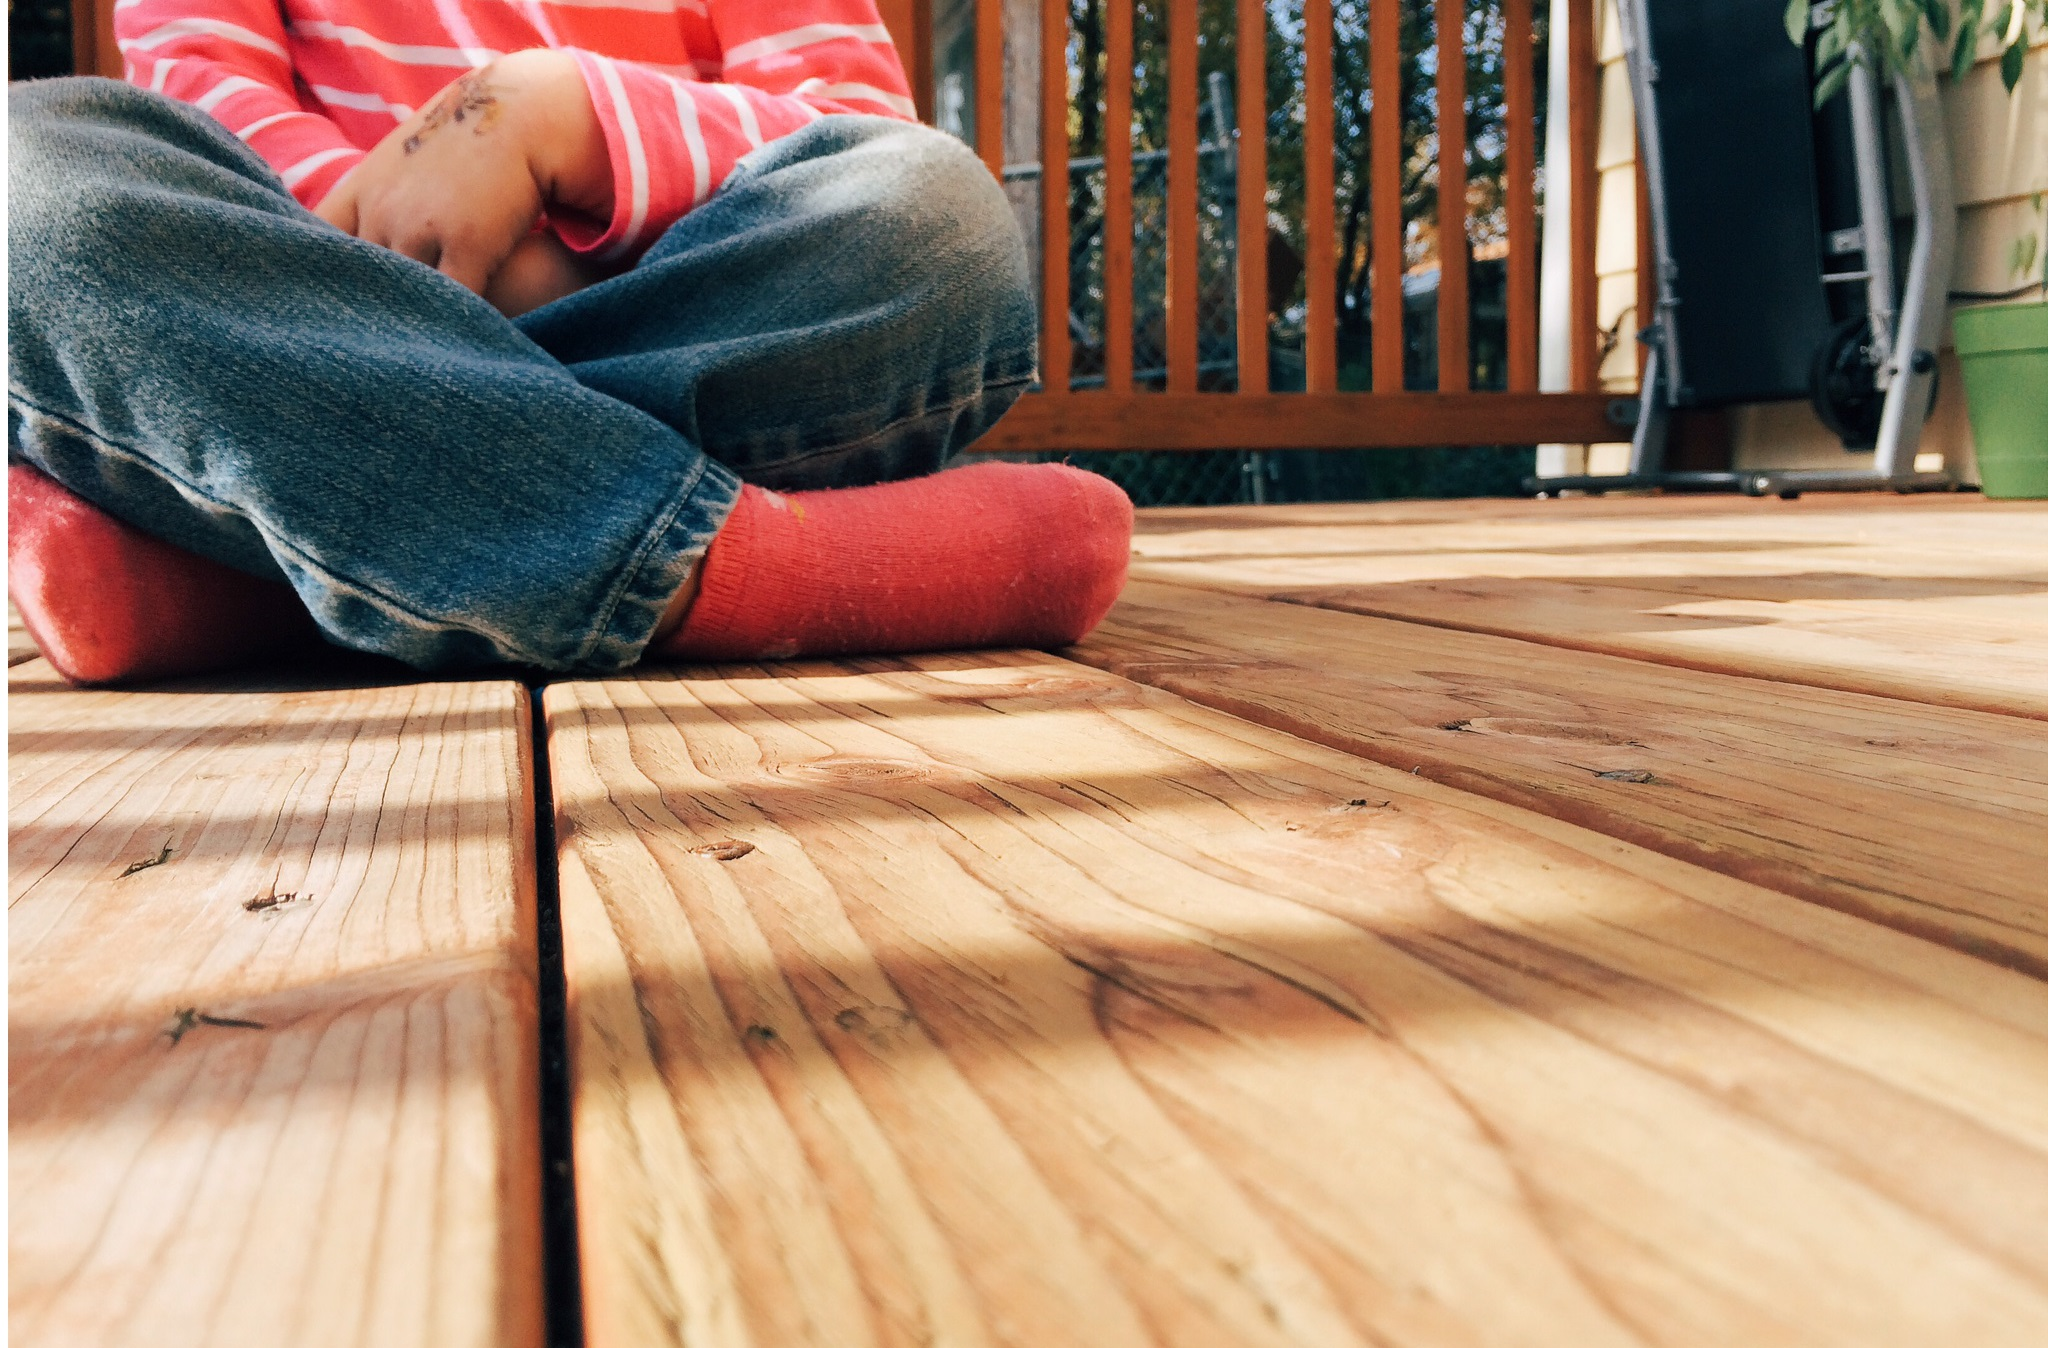 Photo of child sitting on deck by Jeri Johnson